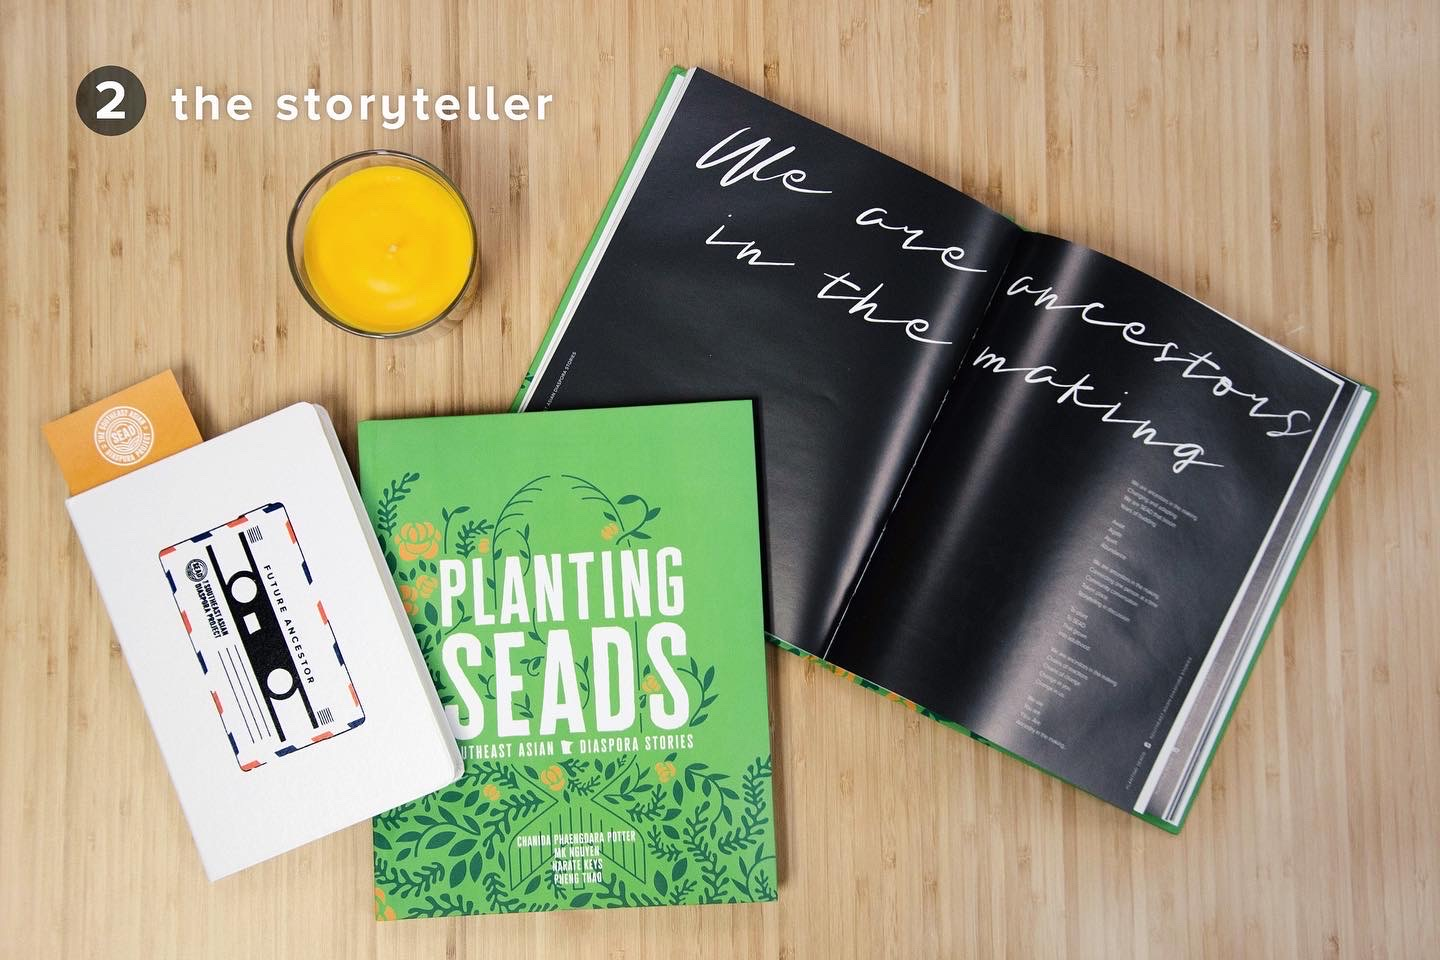 The Storyteller: Planting SEADS book and Dear Village journal